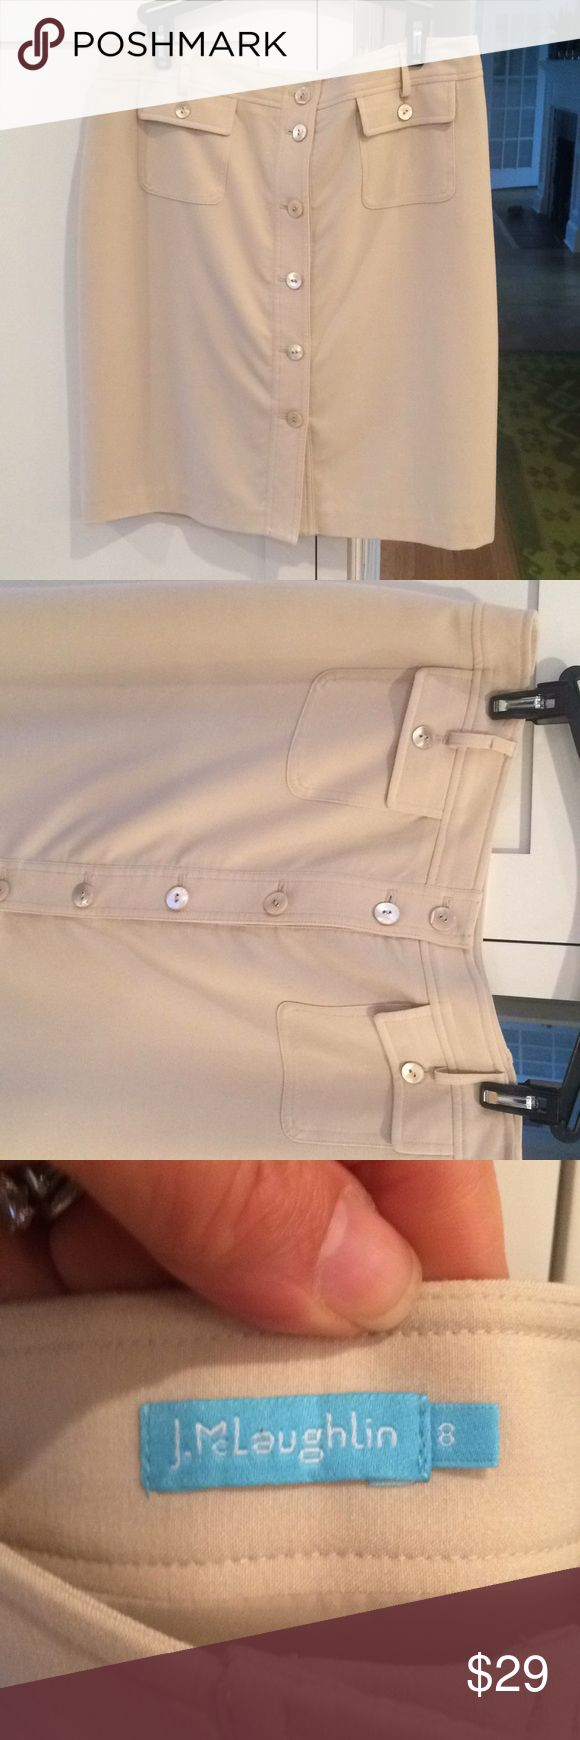 J. MCLAUGHLIN khaki skirt EUC fully lined, excellent tailoring. Perfect year-round weight — pair with a black sweater and boots in cold weather, or a cream silk blouse in warmer weather! J. McLaughlin Skirts Pencil